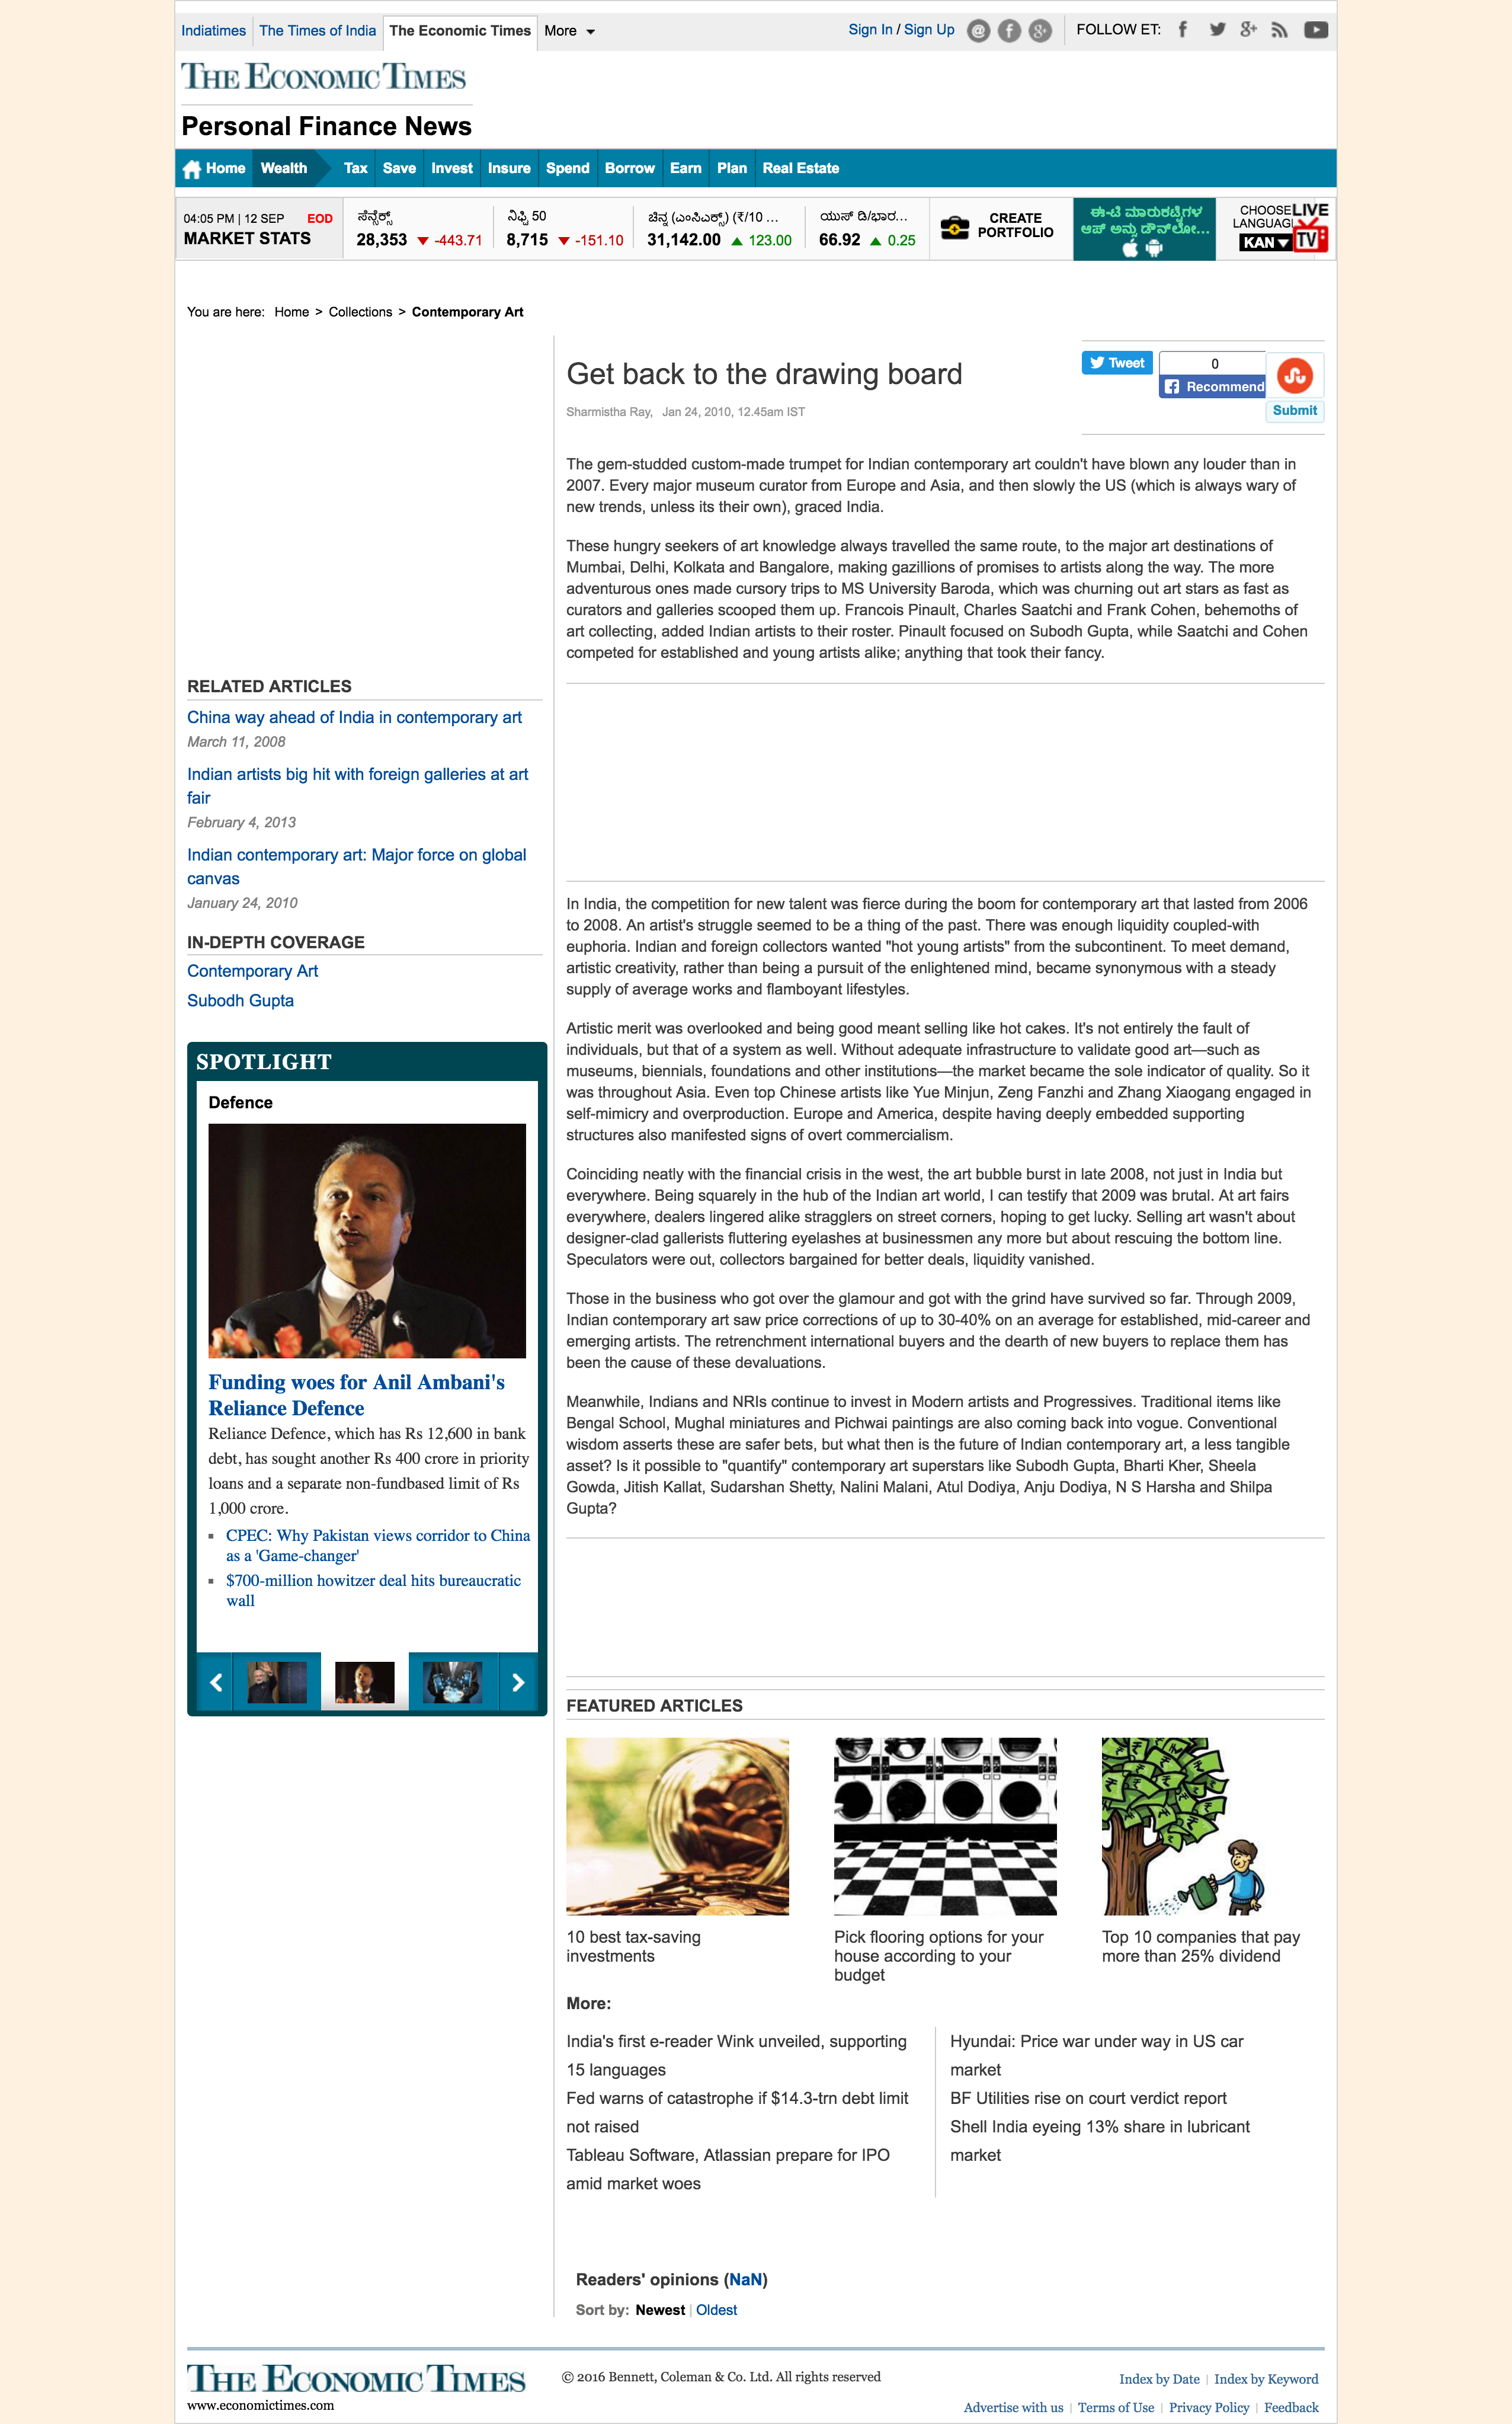 screencapture-articles-economictimes-indiatimes-2010-01-24-news-27582486_1_frank-cohen-art-fairs-subodh-gupta-1473778252451